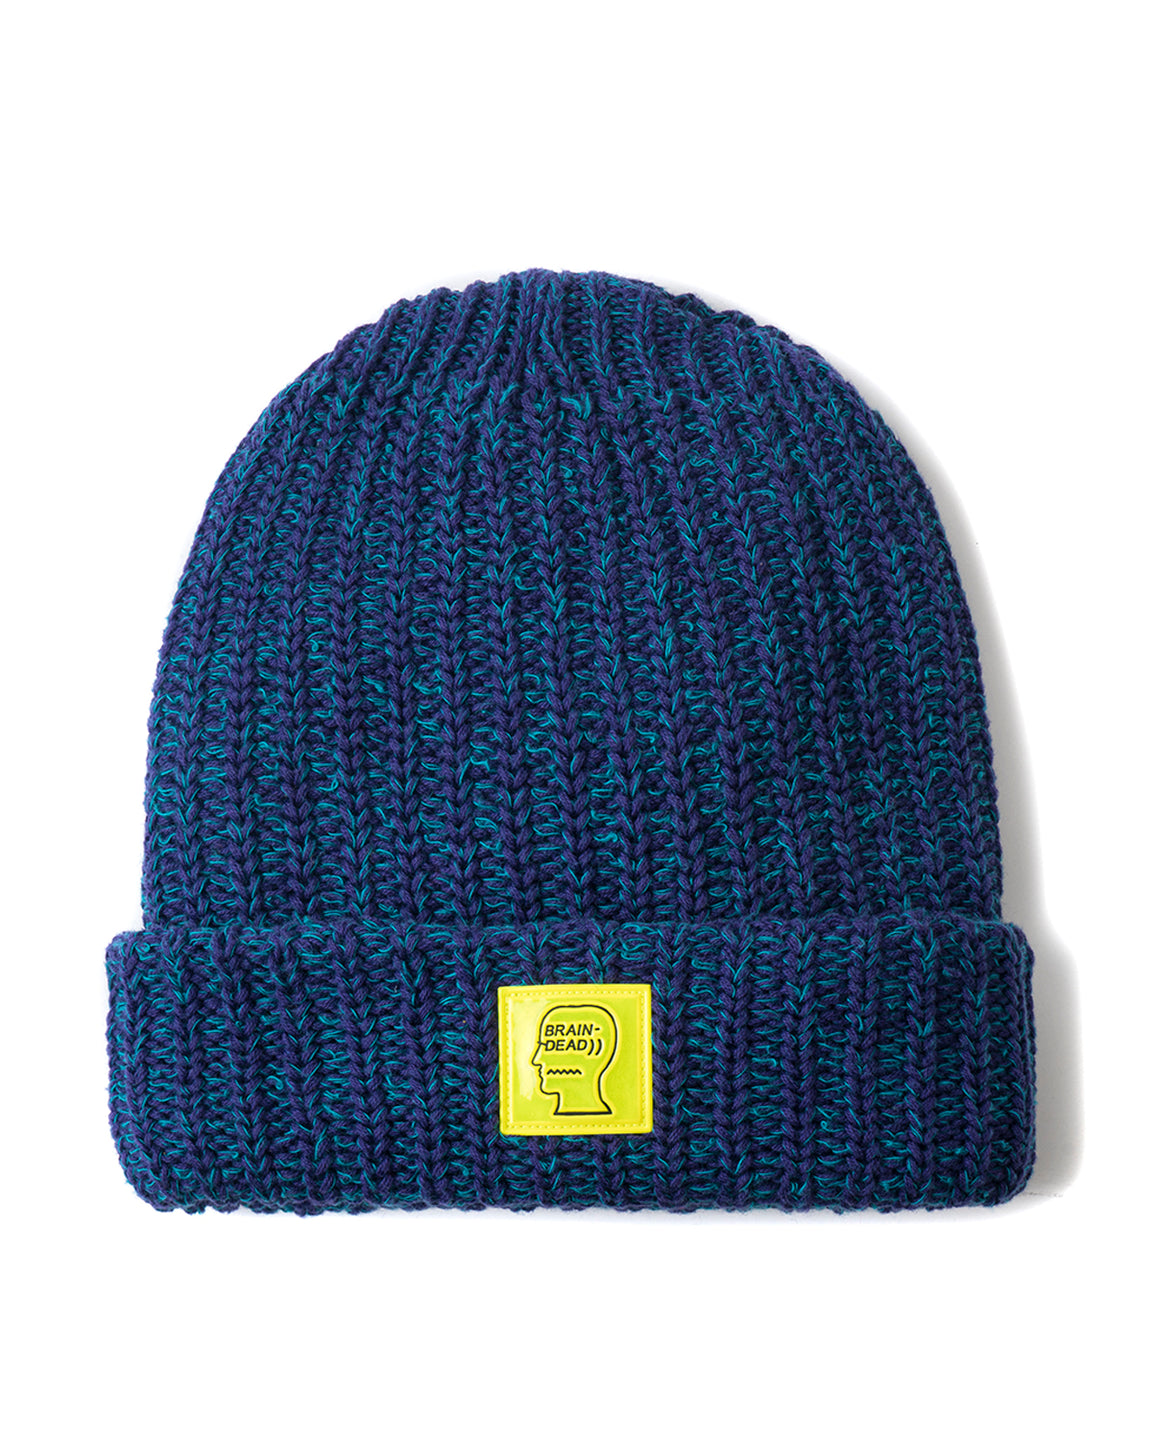 Safety Logo Patch Beanie - Purple/Teal